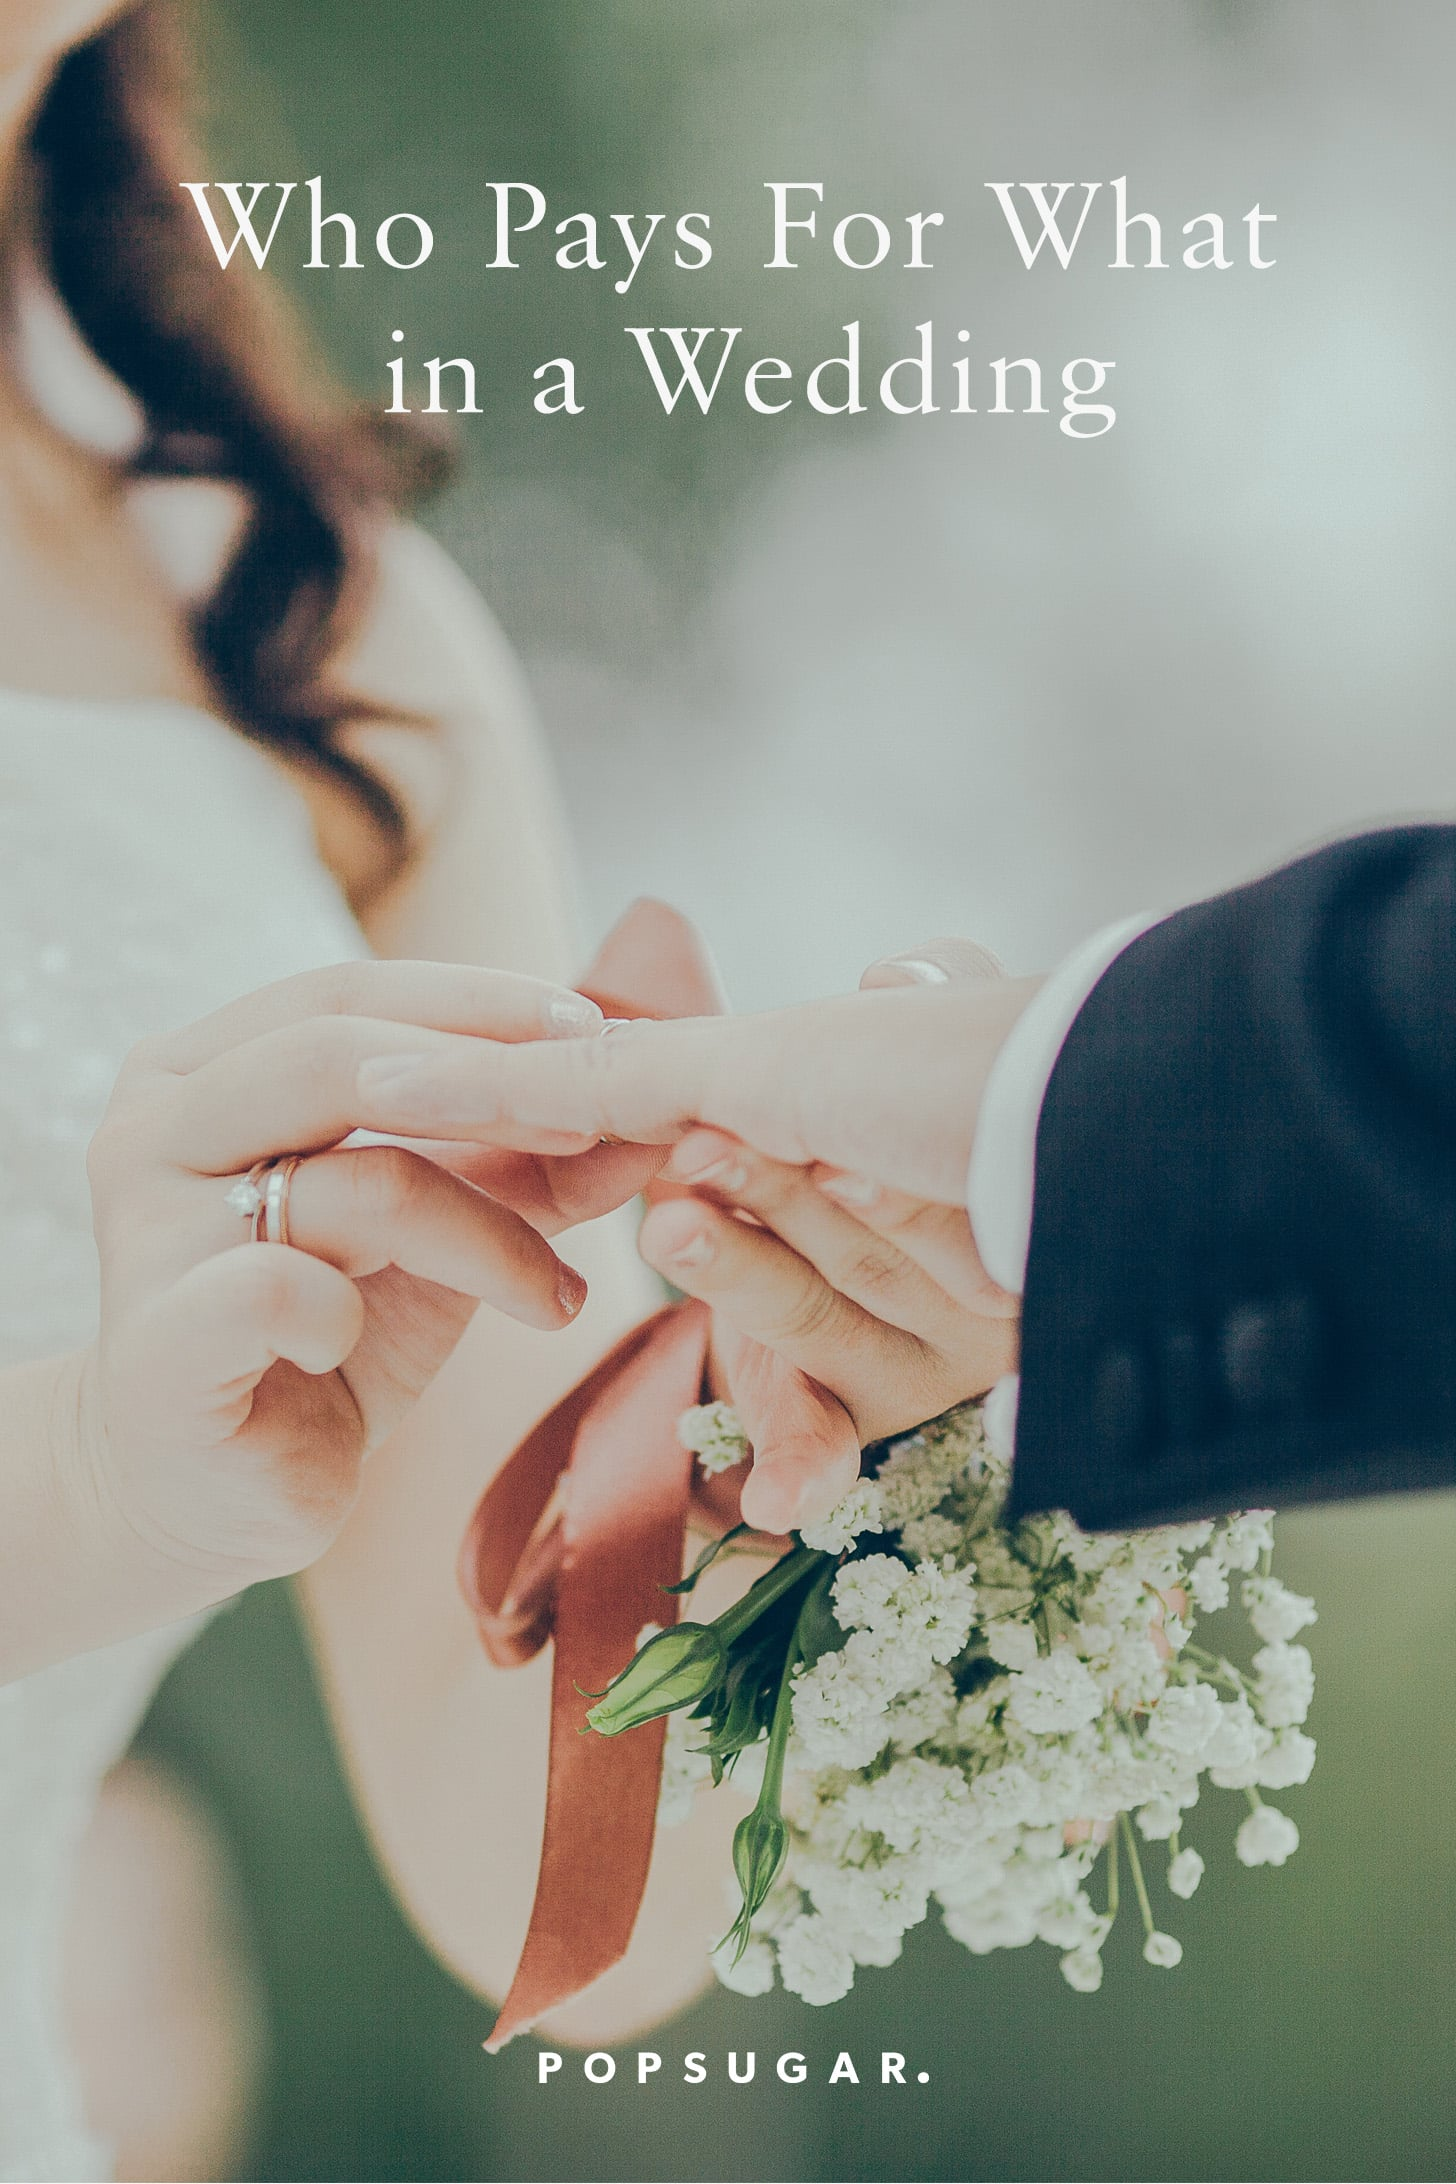 Who Pays For The Wedding.Who Pays For What In A Wedding Popsugar Smart Living